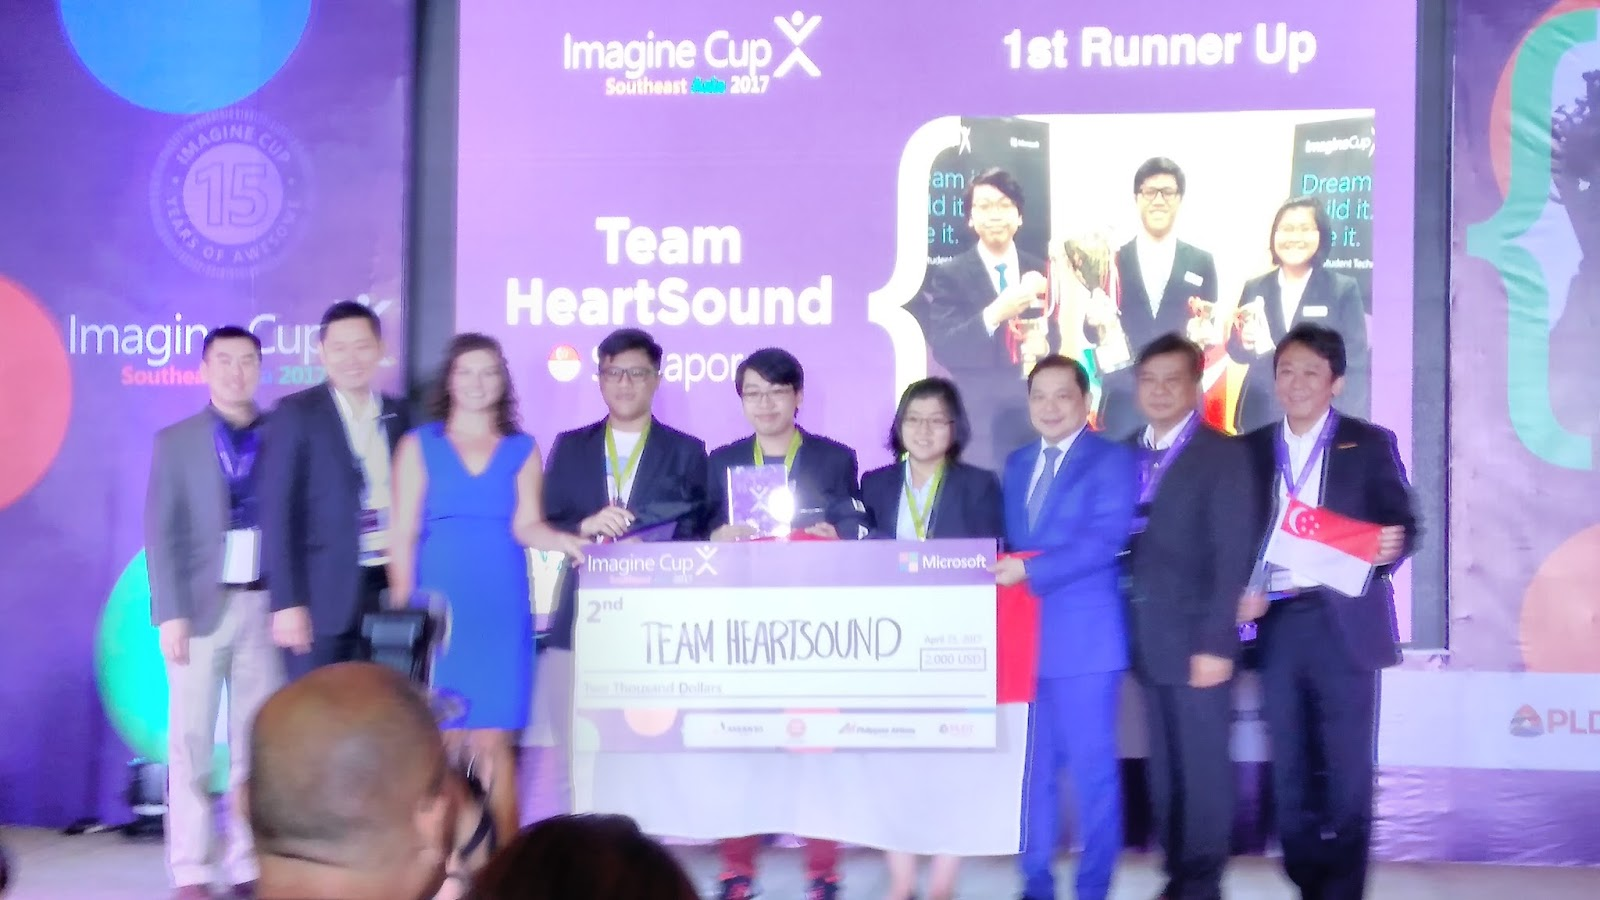 The First Runner Up And Second Runner Up Places Were Awarded To Team  HeartSound From Singapore And Team Opticode From The Philippines  Respectively.